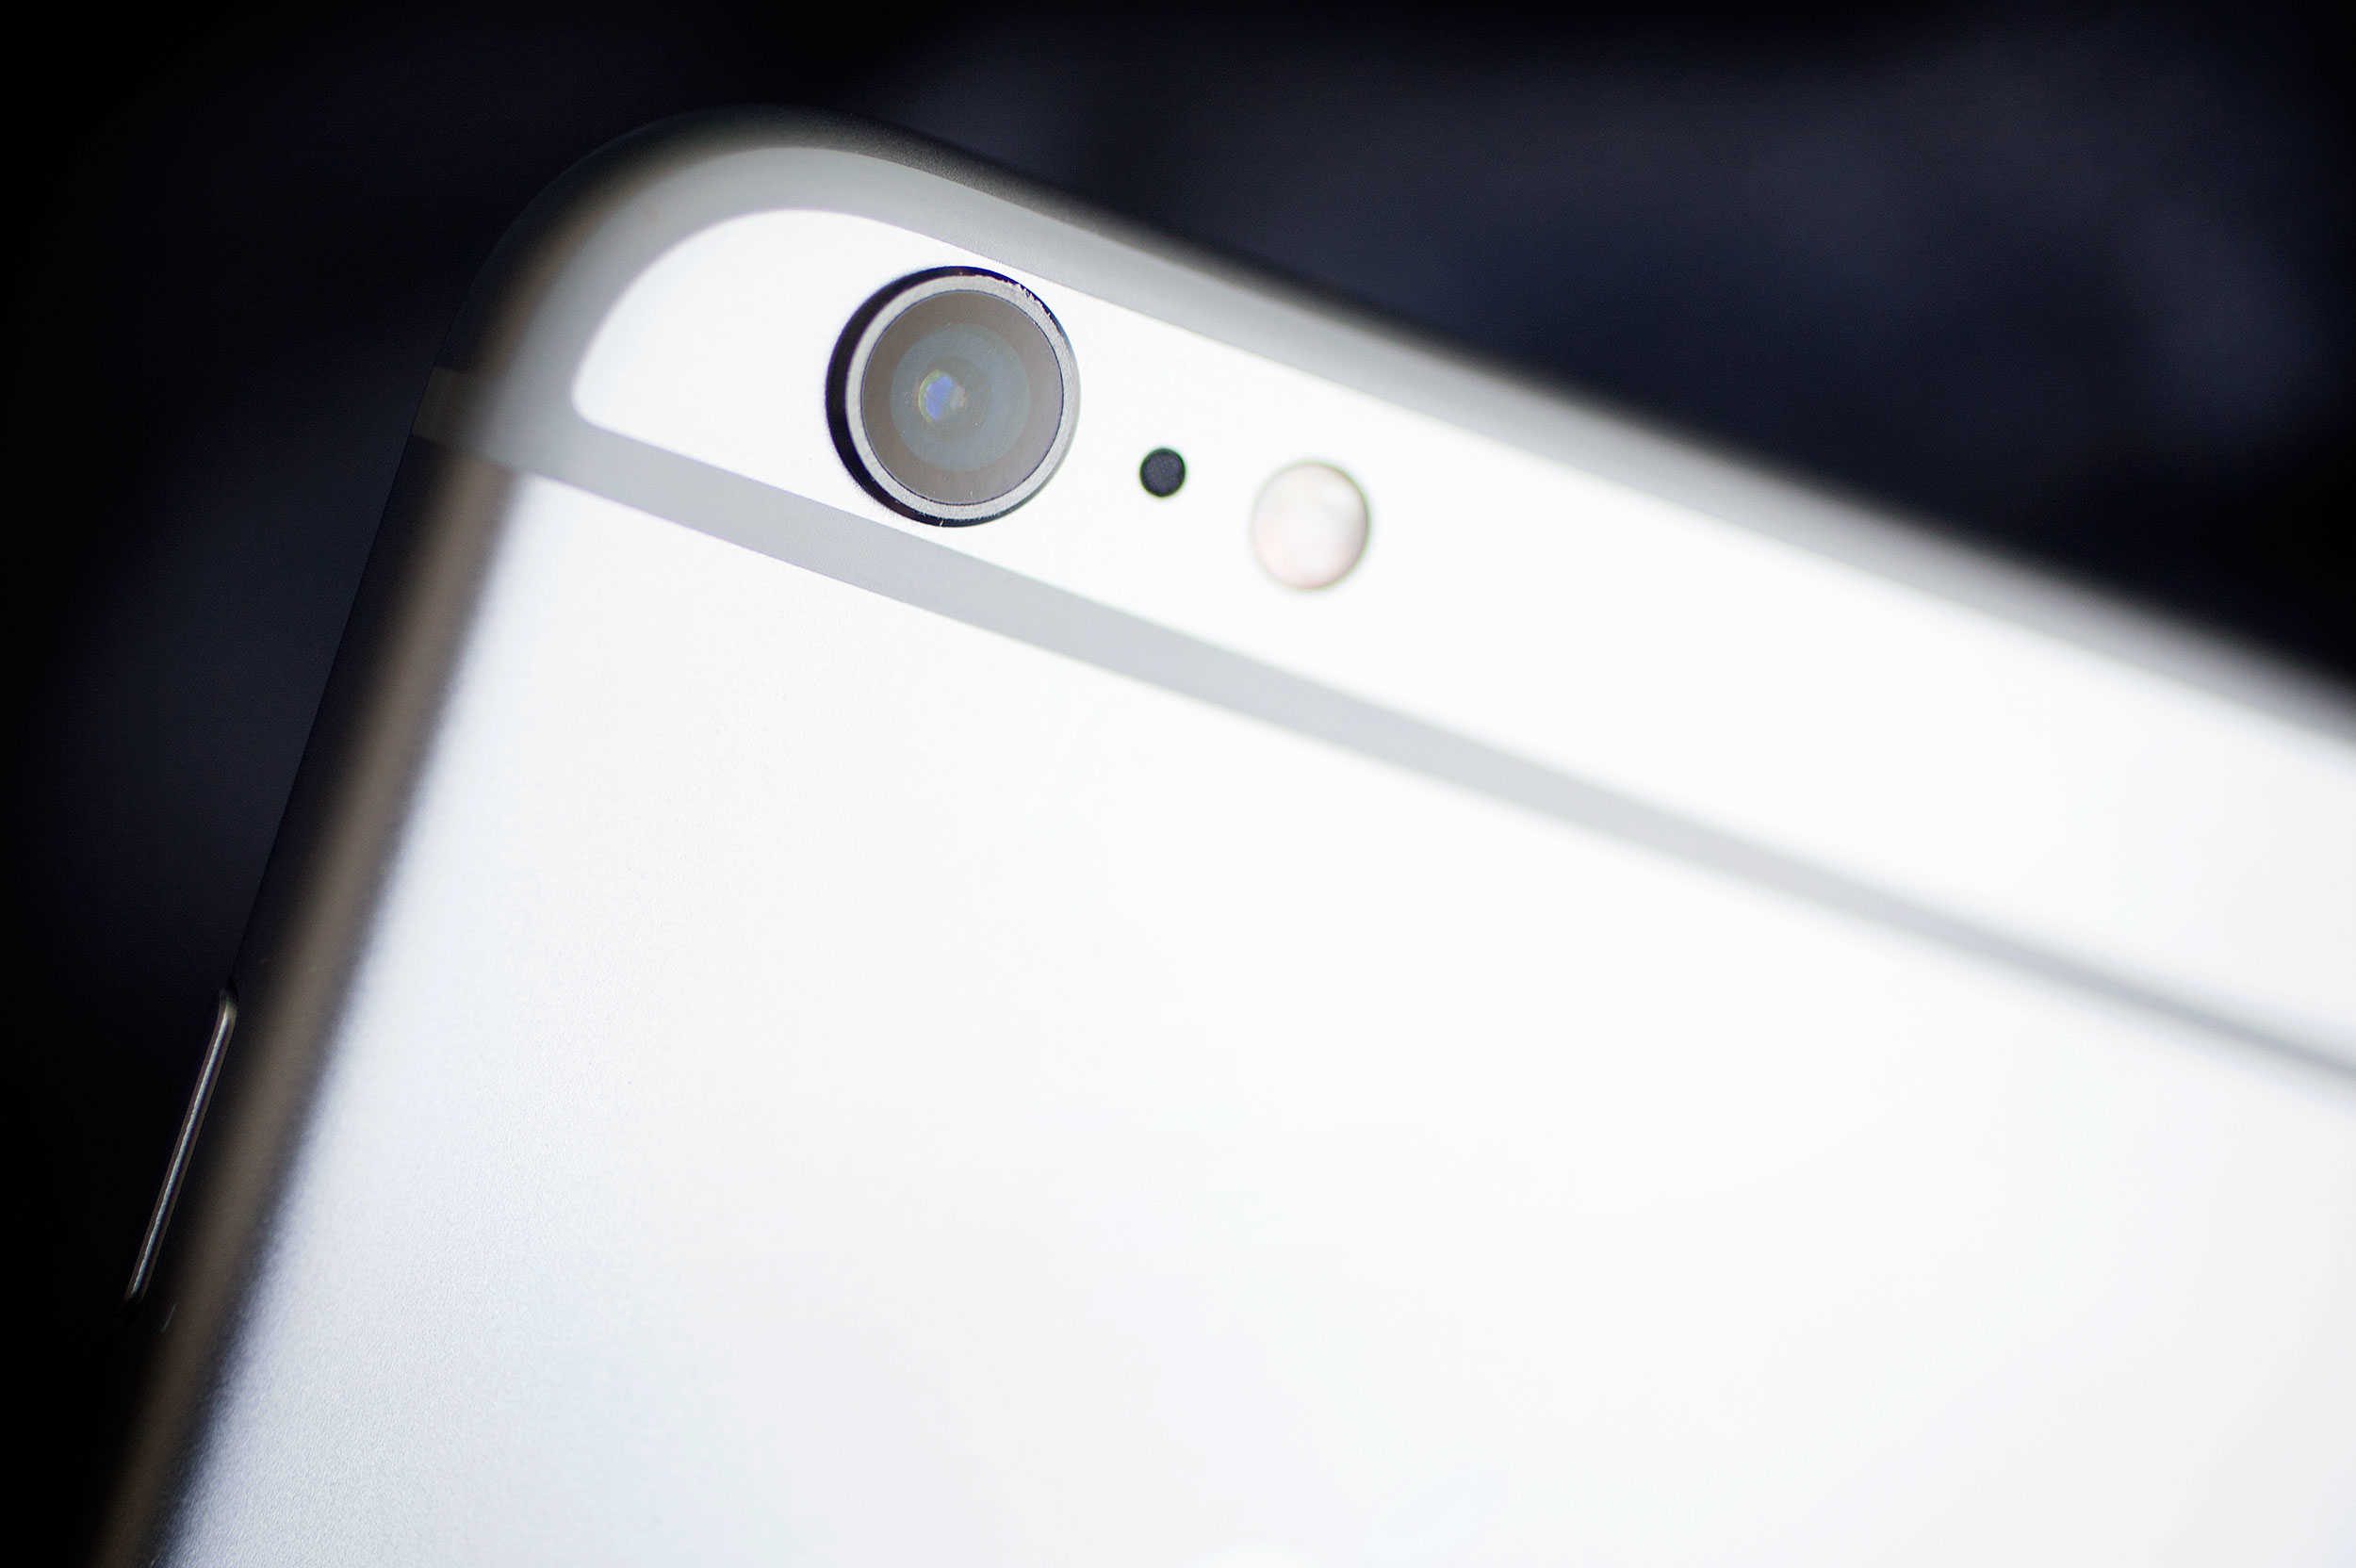 The cameras on the iPhone 6s has a 12-megapixel sensor and 4K video.